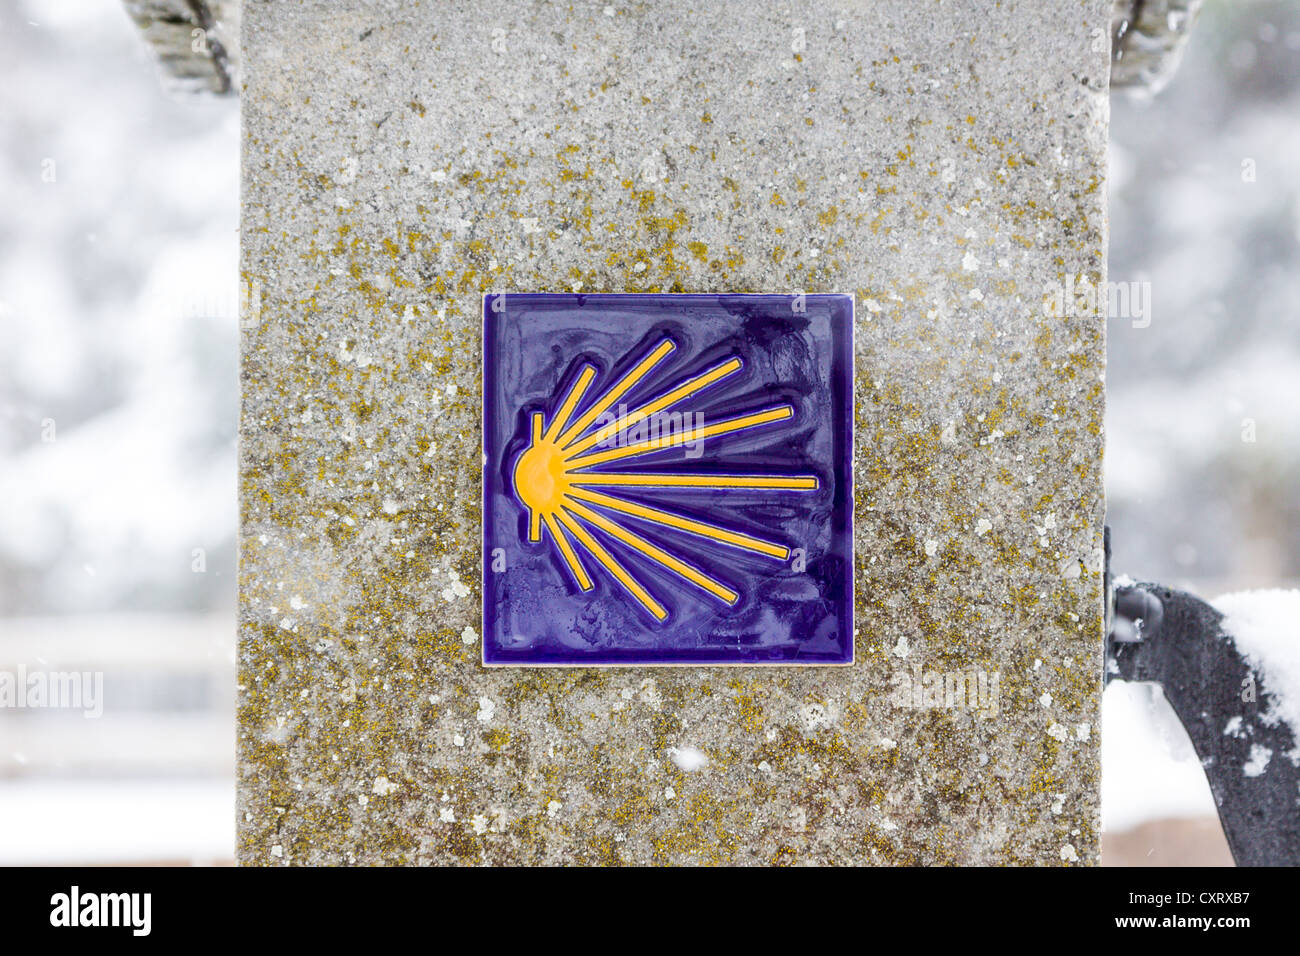 Symbol marking the pilgrimage route of the Way of St. James in the snow, Einsiedeln, Switzerland, Europe - Stock Image